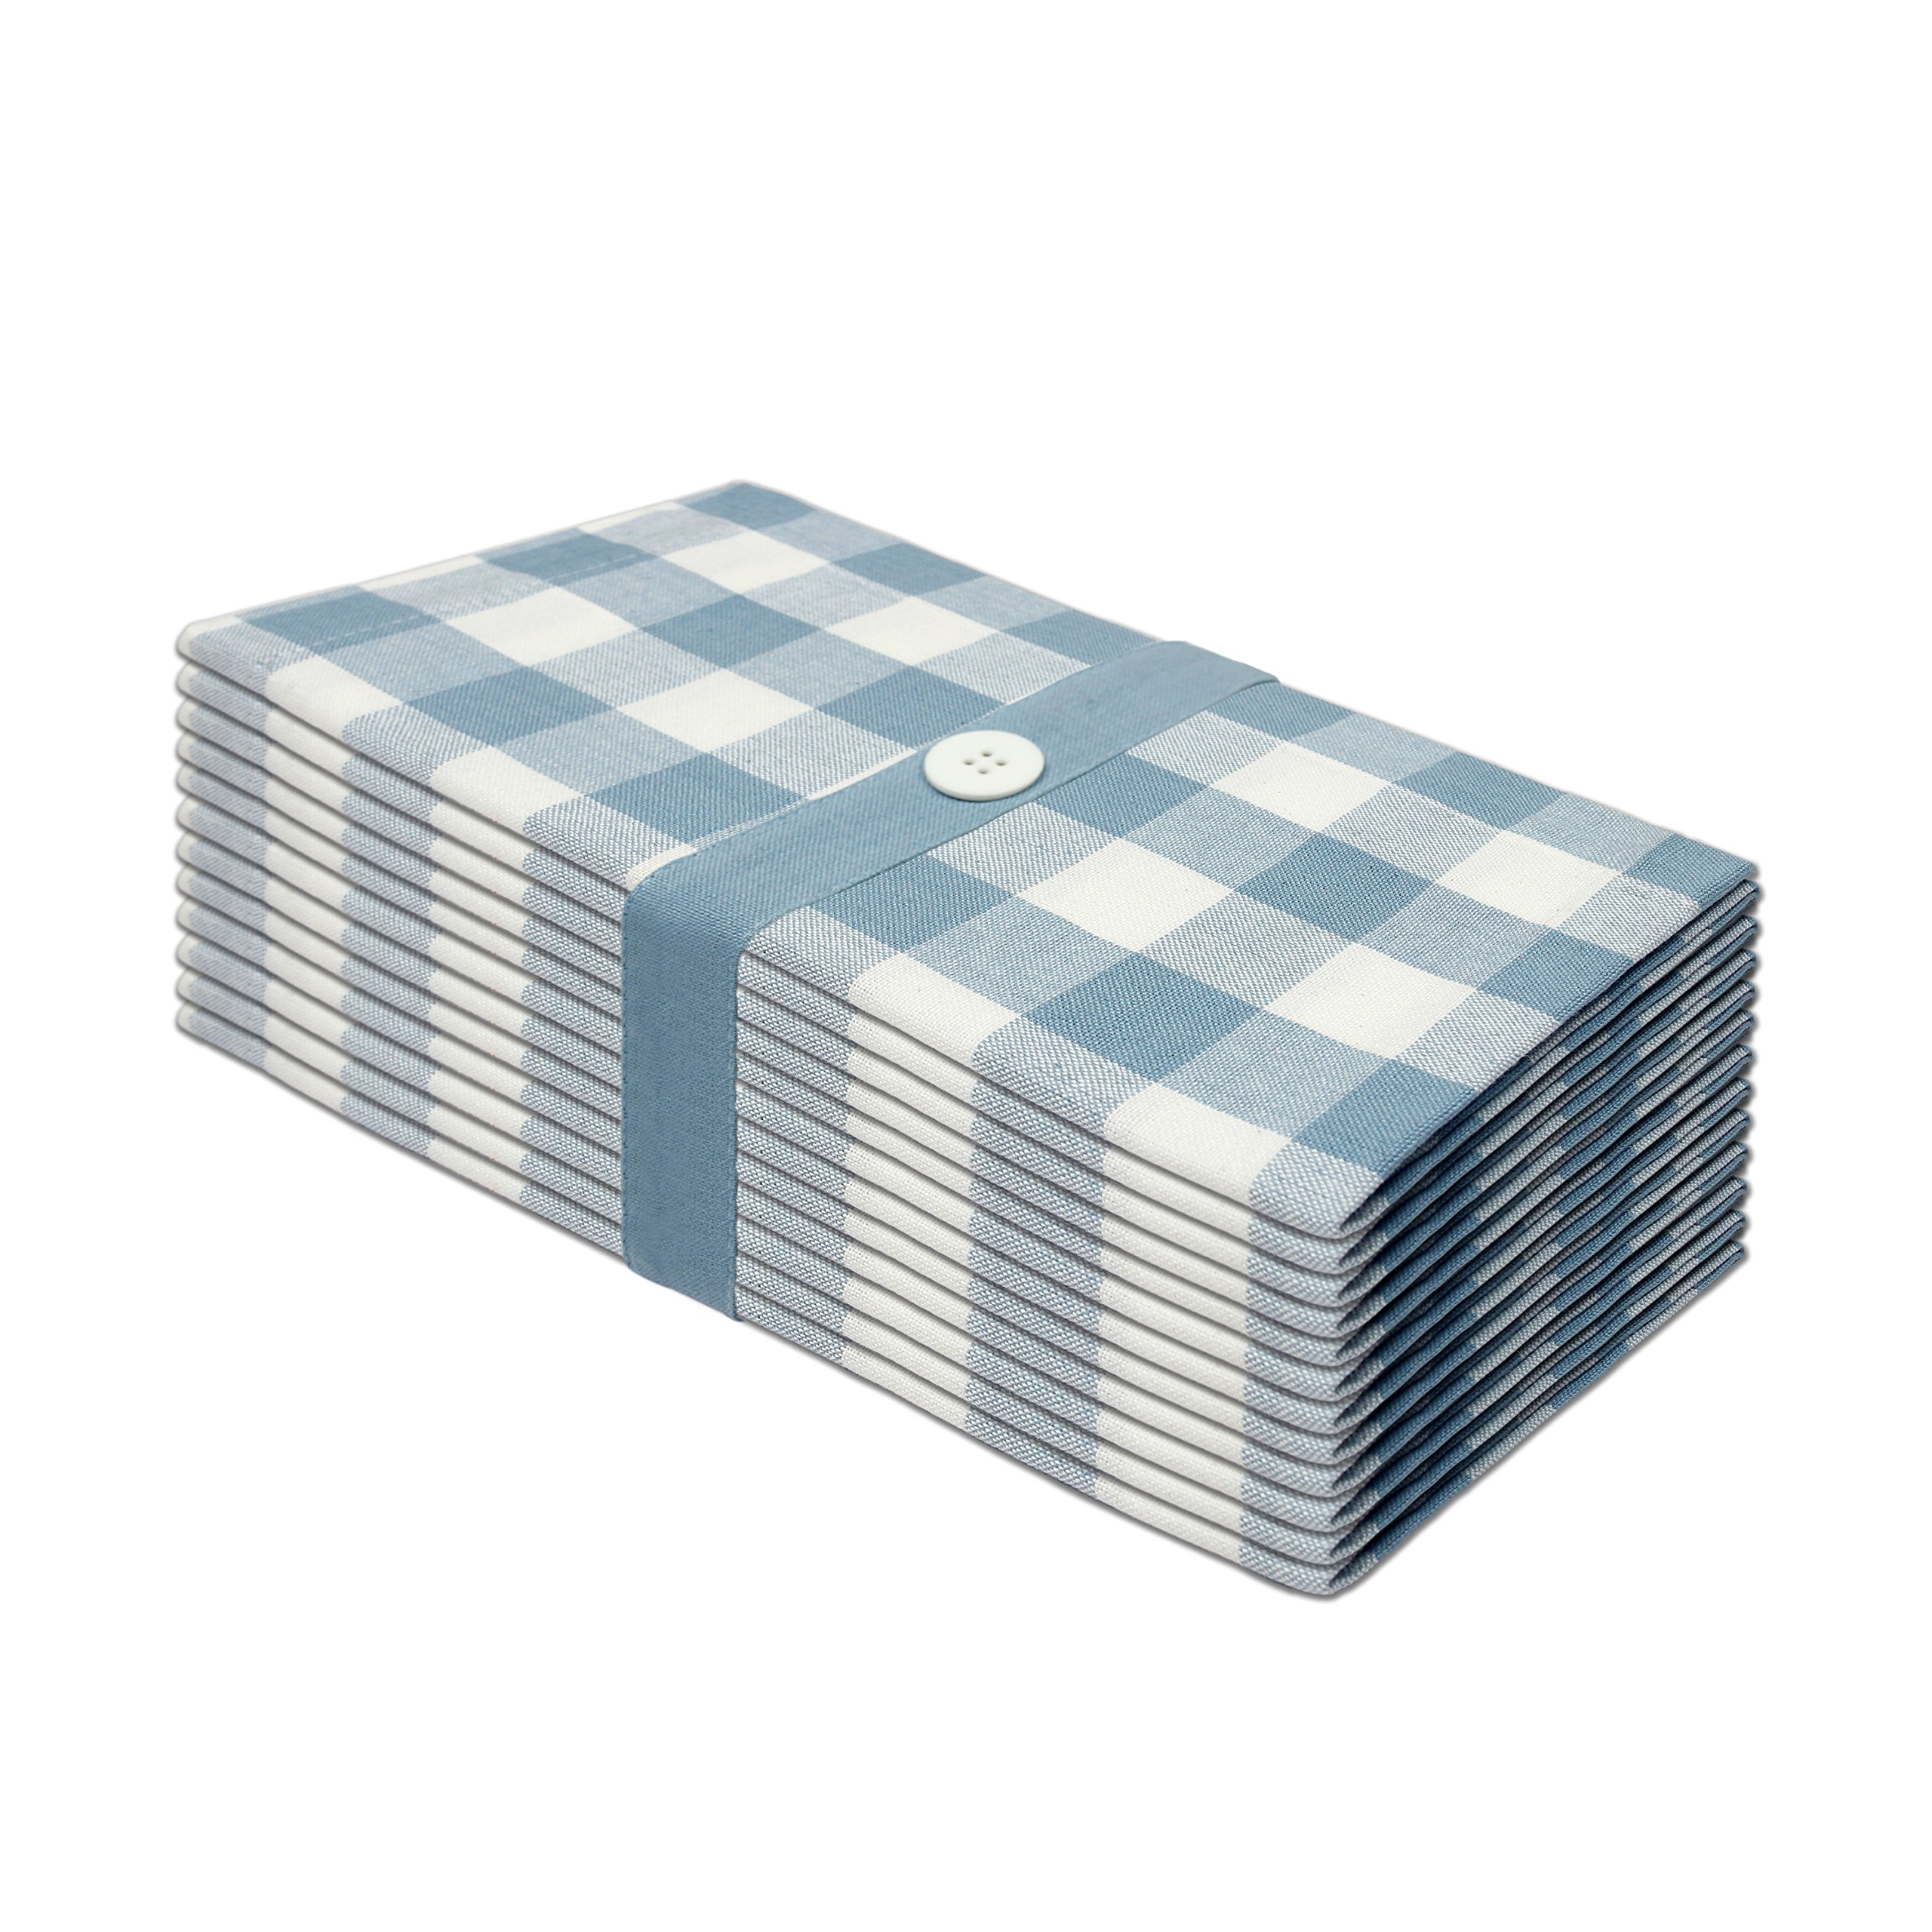 Cotton Craft 12 Pack Gingham Checks Oversized Dinner Napkins - Wedgewood Blue - Size 20x20-100% Cotton - Tailored with mitered corners and a generous hem - Easy care machine wash